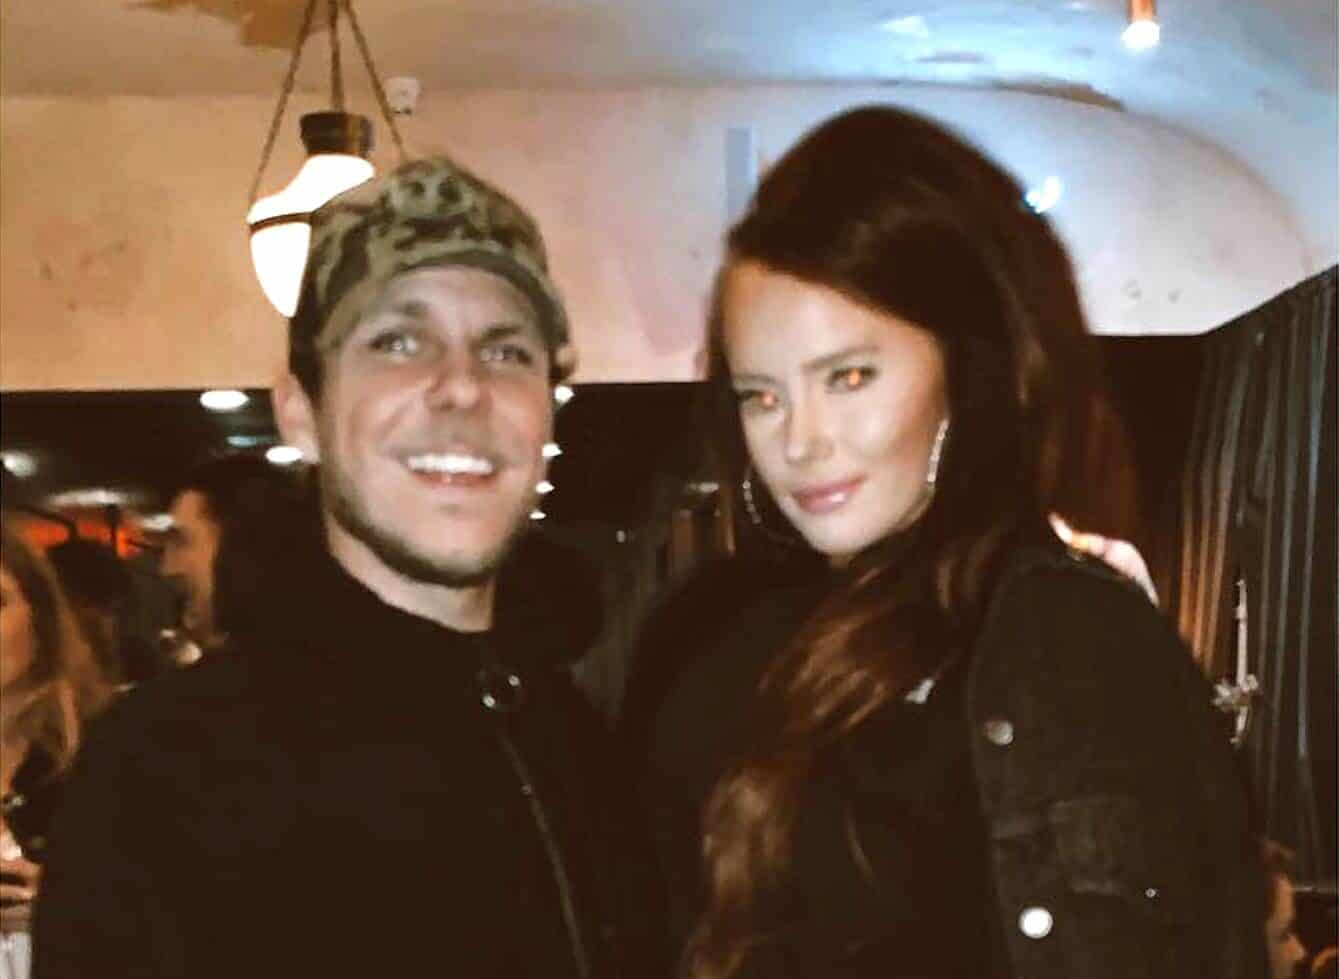 REPORT: Southern Charm Star Kathryn Dennis and Hunter Price Have Broken Up, Plus She Prompts Engagement Rumors With Ring Photo